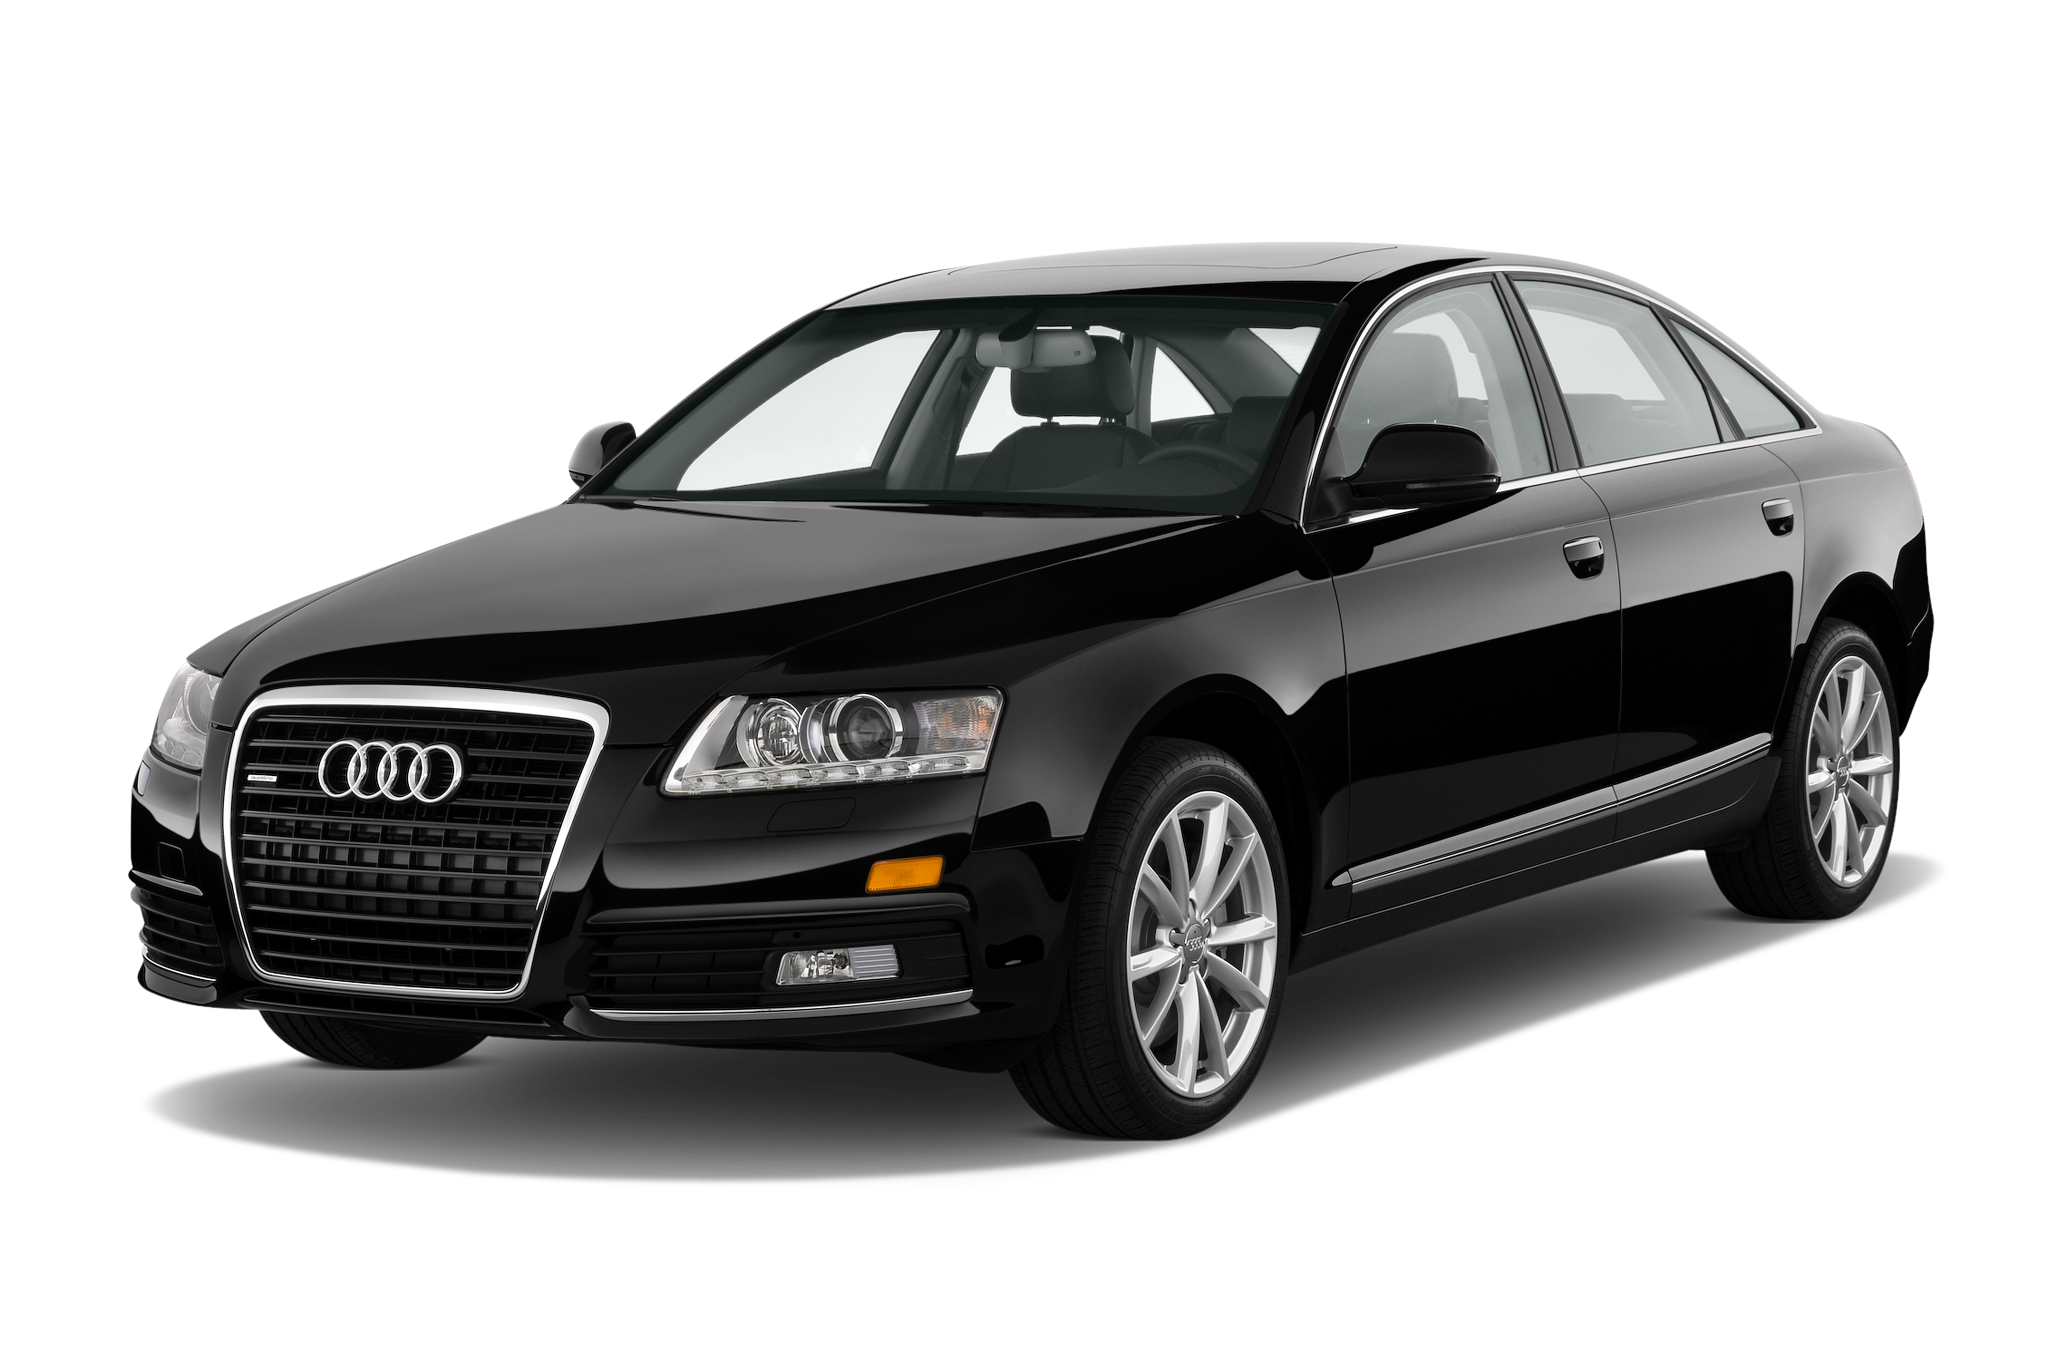 2010 Audi A6 3 0 Tfsi Quattro Audi Luxury Sedan Review